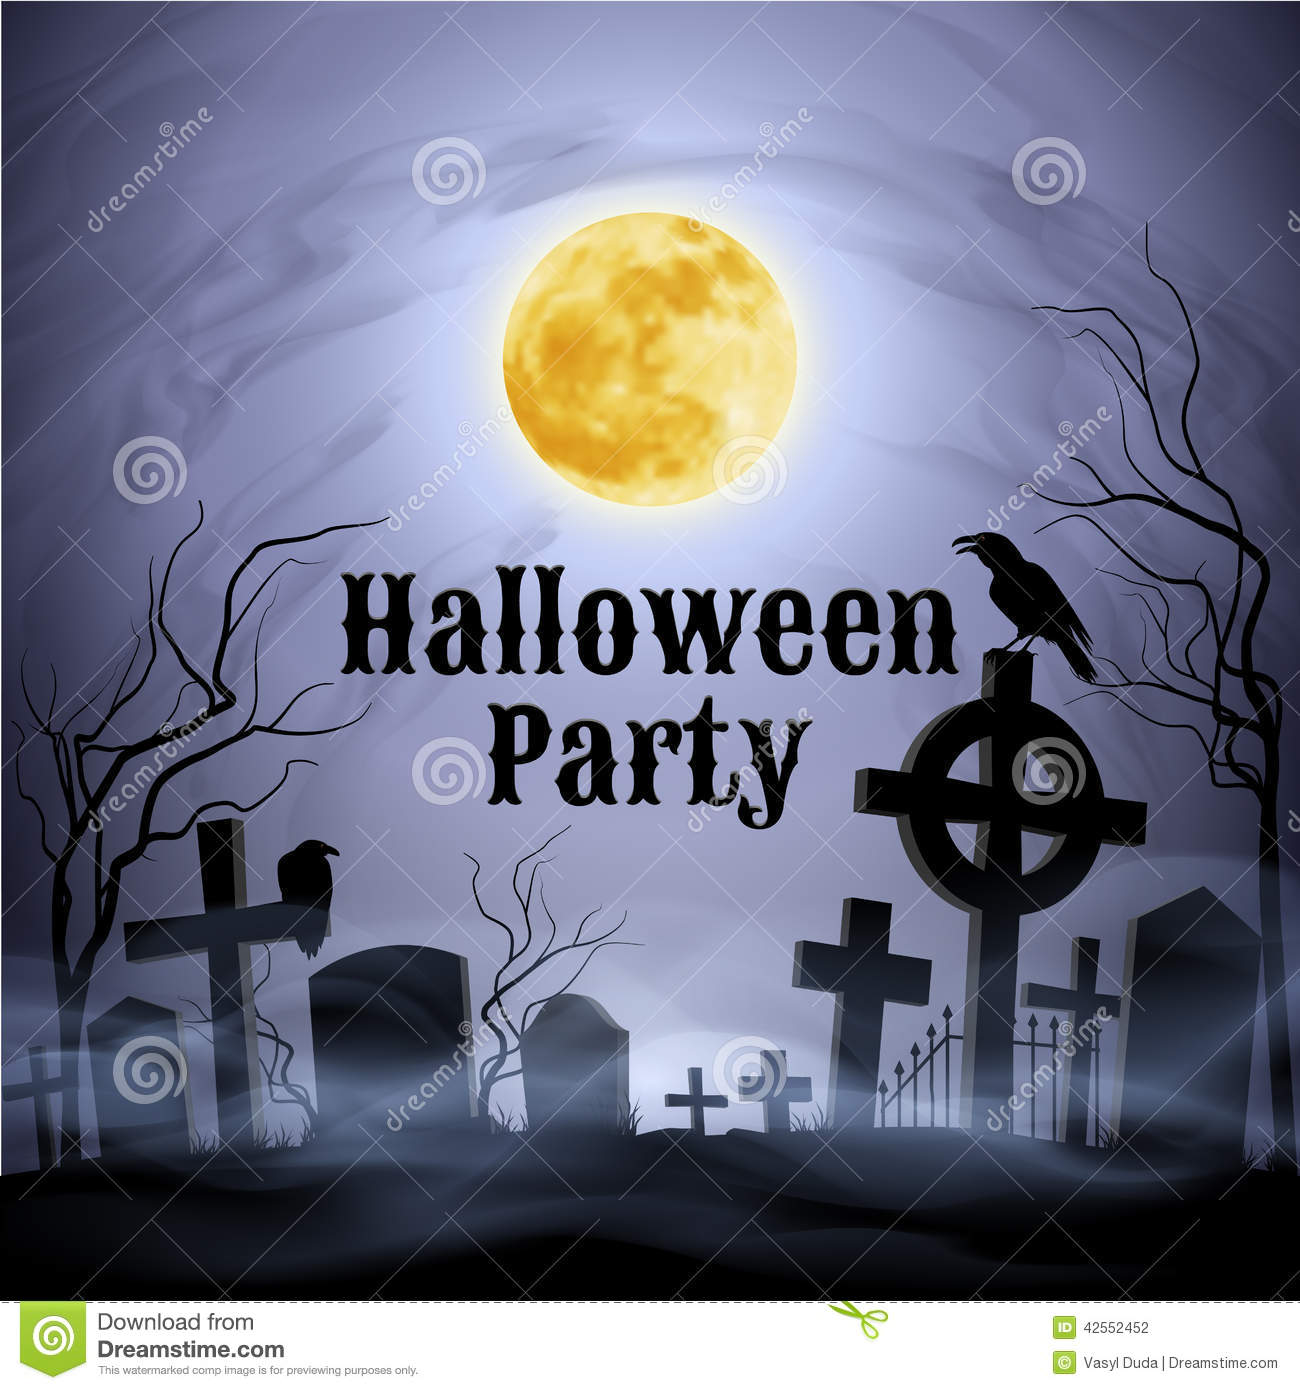 Halloween Party On A Spooky Graveyard Under Full Moon Stock Vector ...